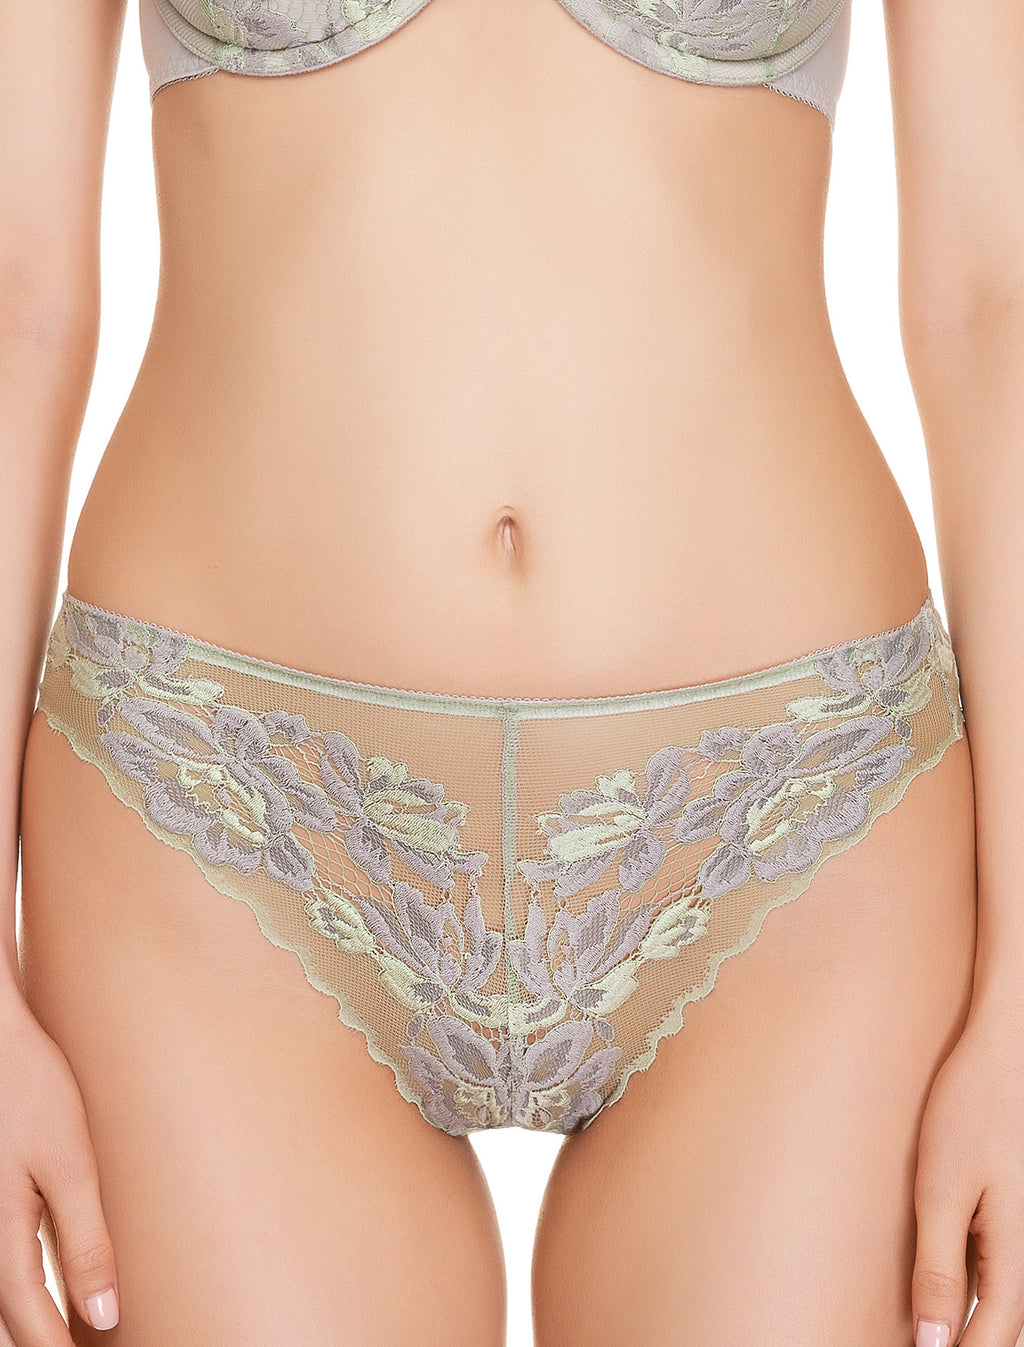 Lace Brazilian Panties